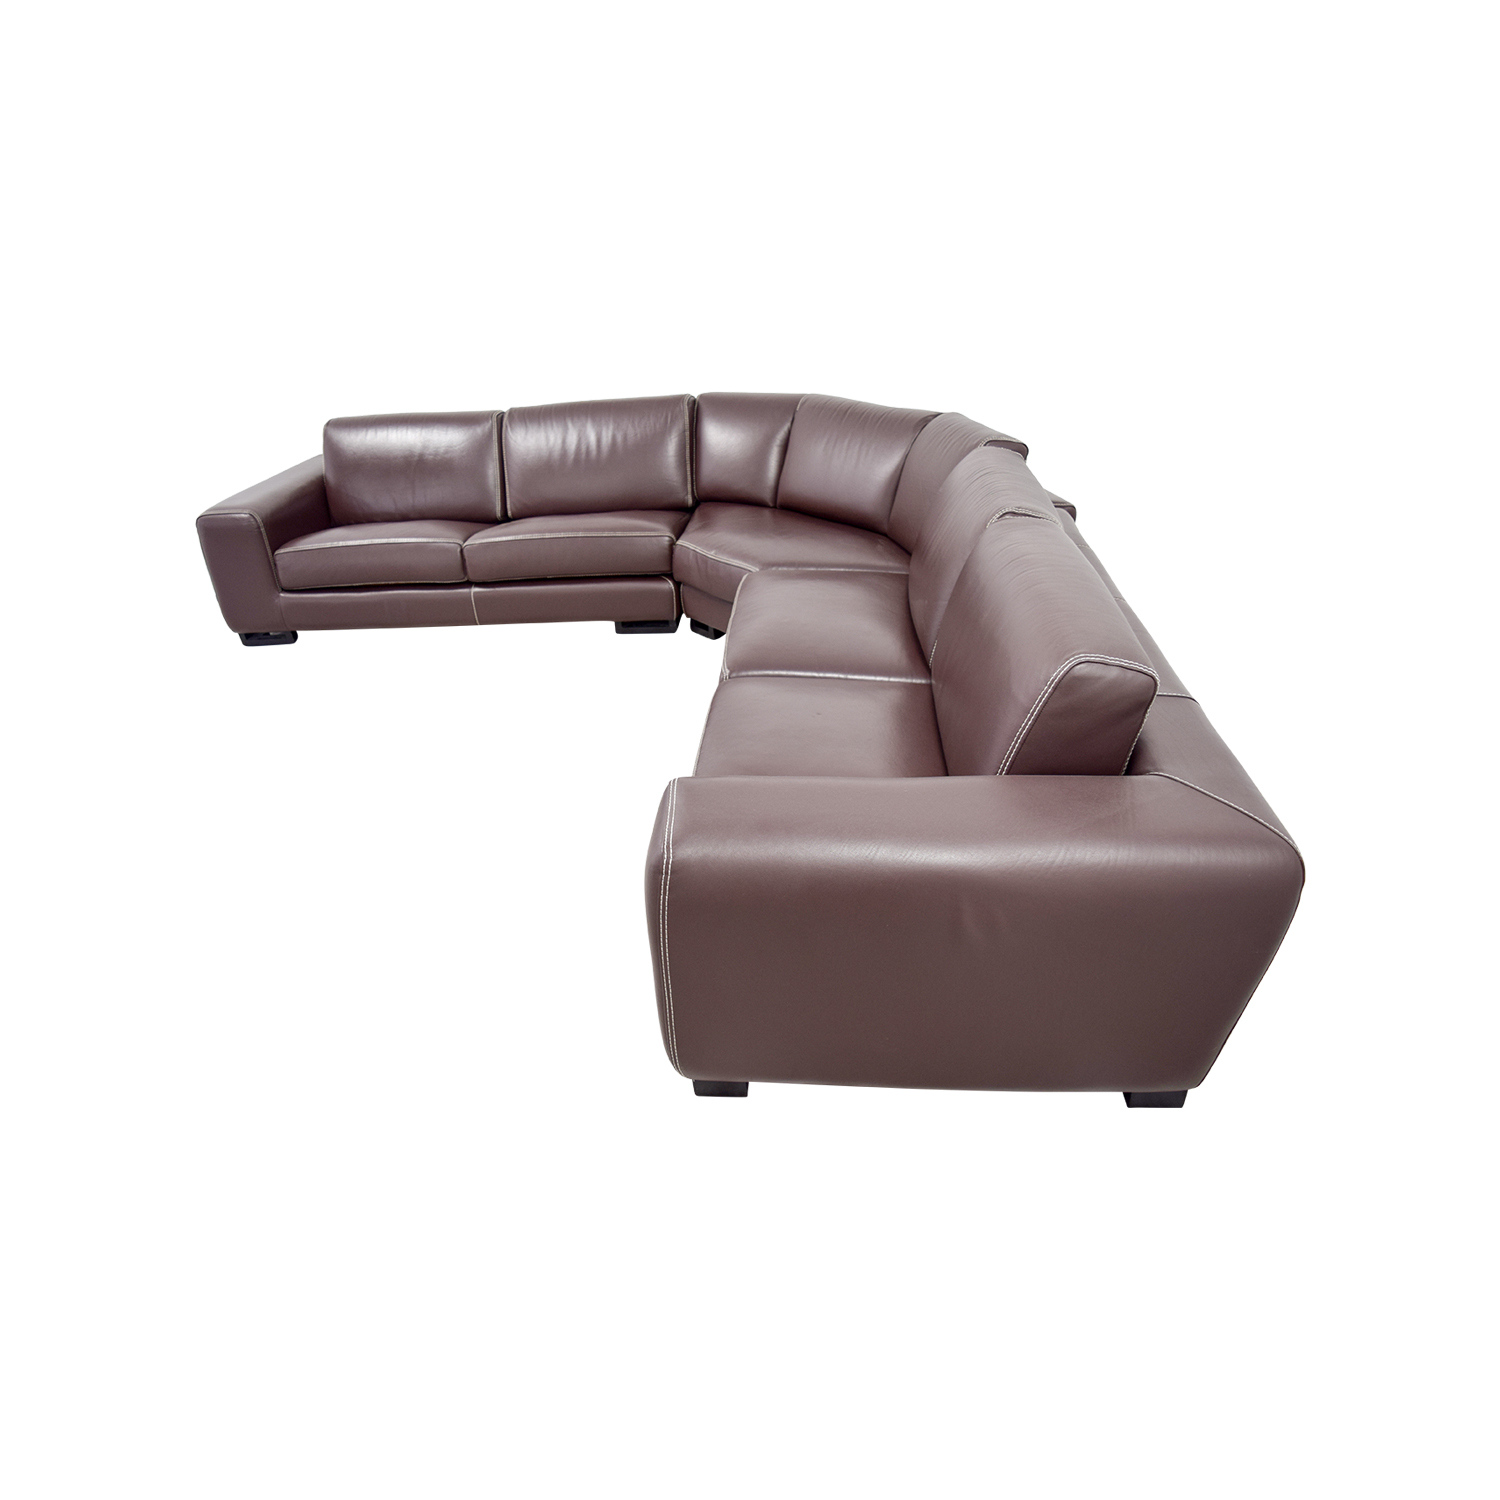 Roche Bobois Roche Bobois Brown Leather Sectional Sofa Bed dimensions